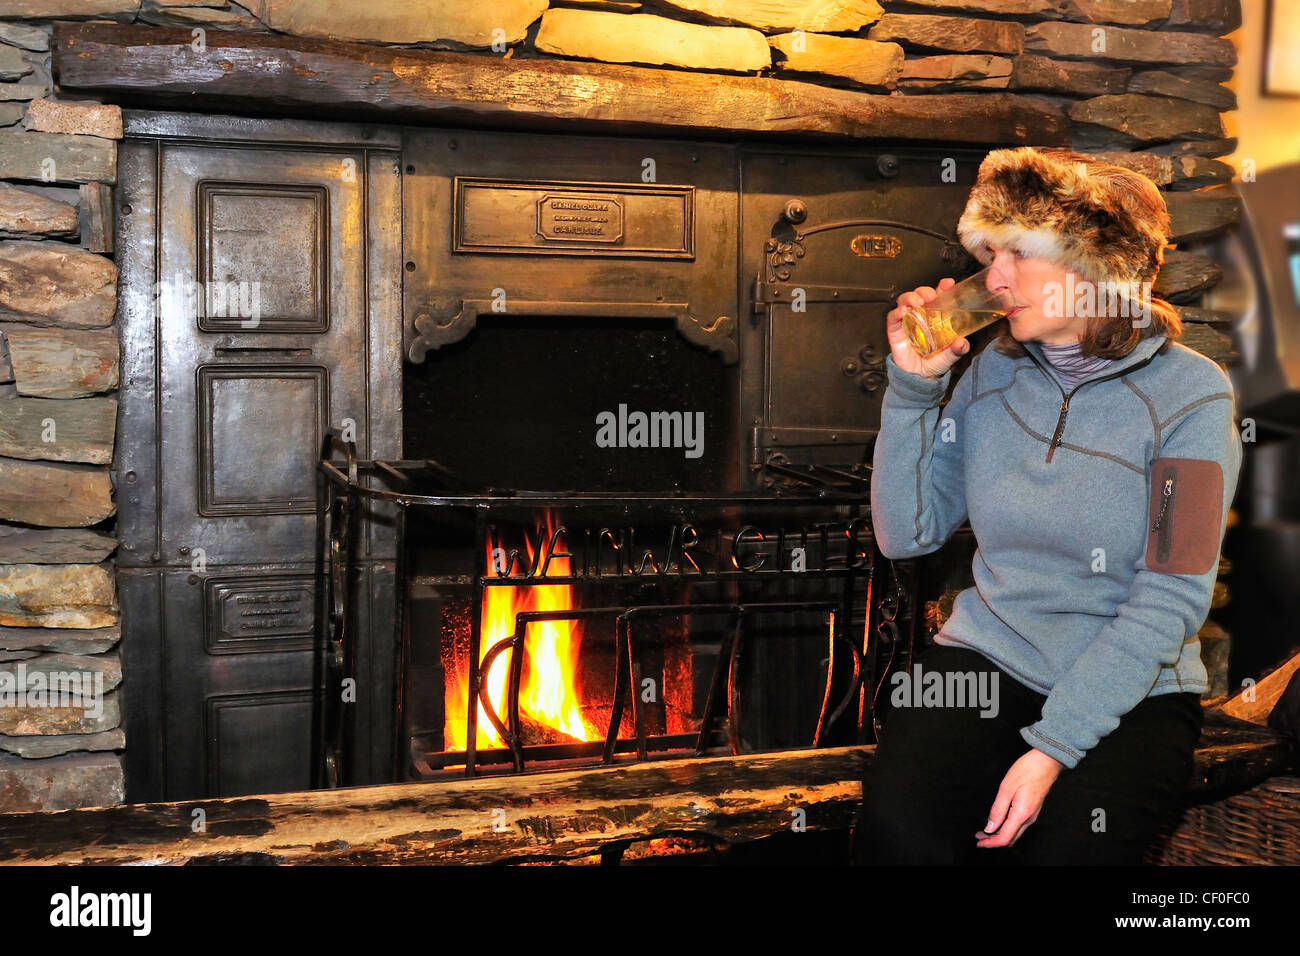 Lady walker   sitting on a fire side seat drinking a half pint of Langdale 's ale at Wainwrights  Inn Elterwater - Stock Image